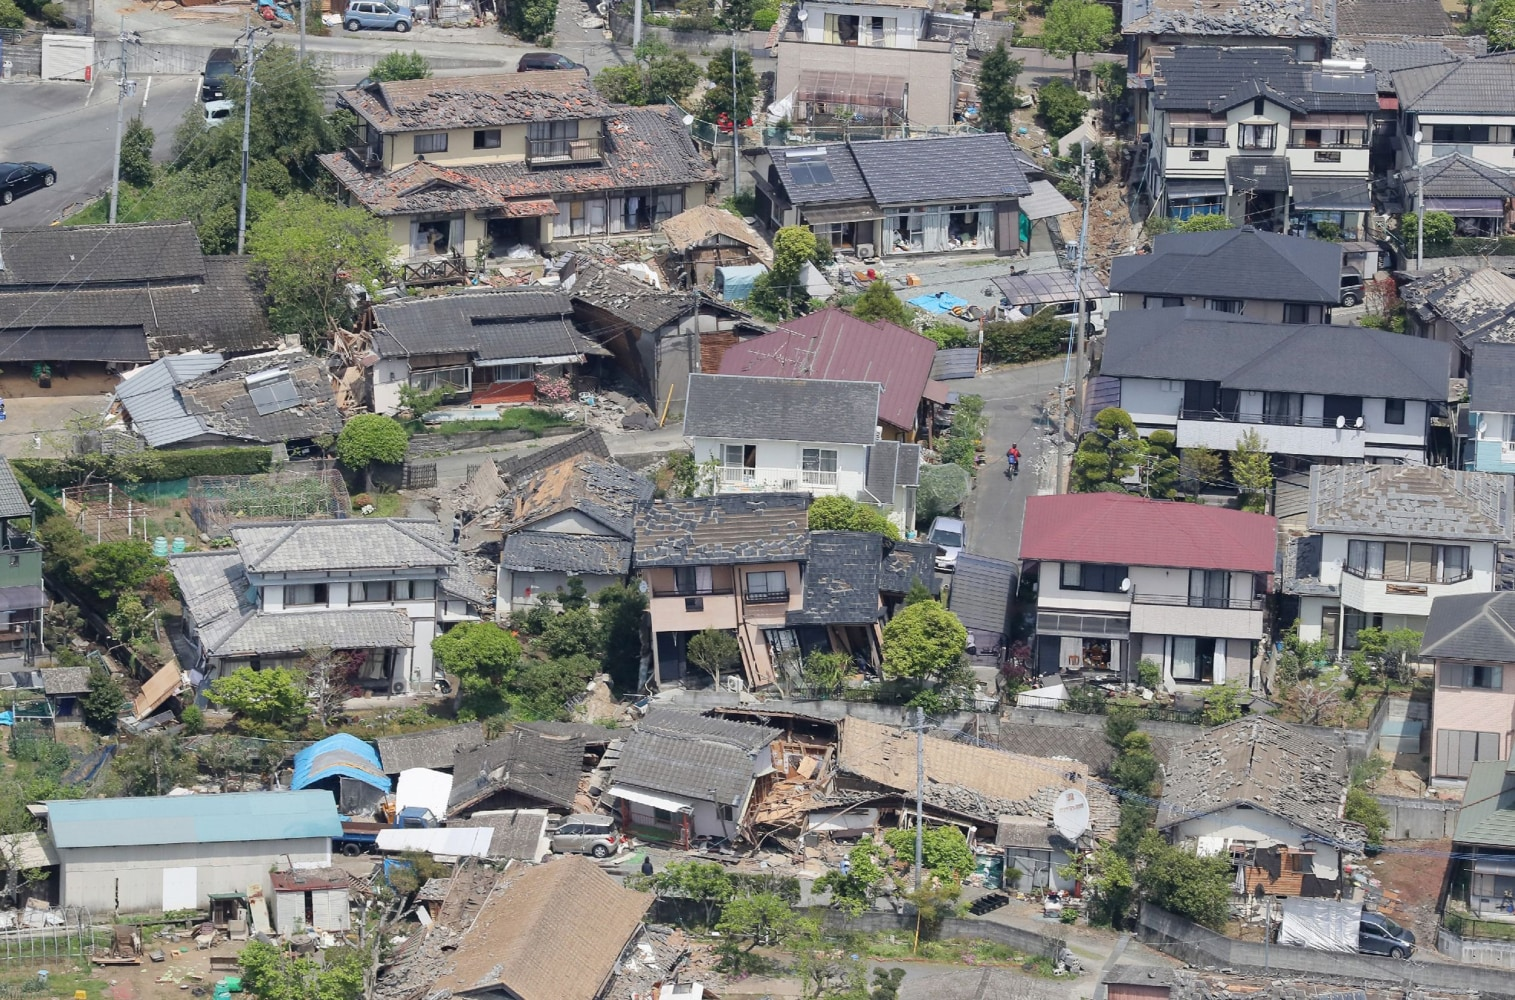 160415-japan-earthquake-destruction-jpo-106a_685b3ca32379c2c1da4d9b5b1f6ef7f6.nbcnews-ux-2880-1000.jpg